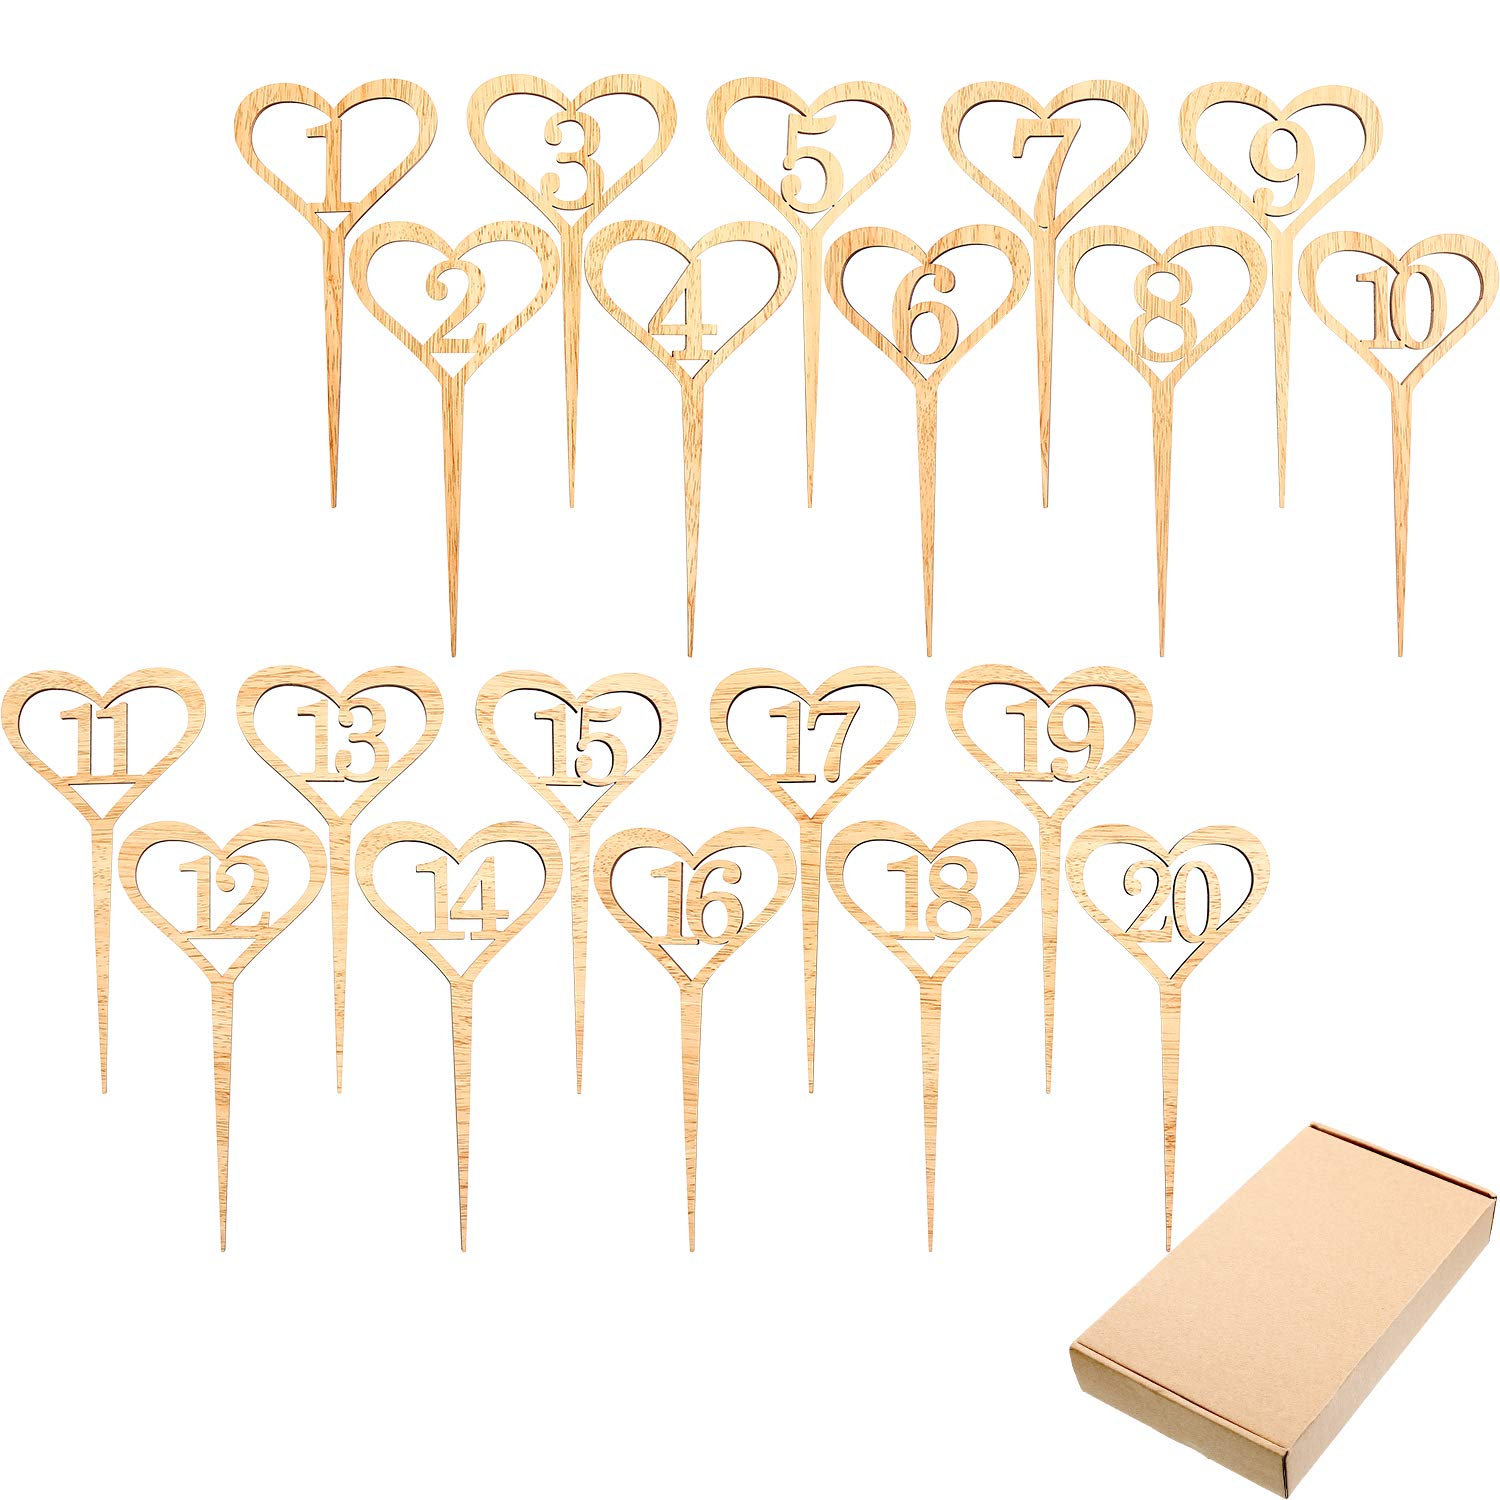 SATINIOR 20 Pieces Wedding Table Number Cards Wooden Heart Shape Numbers for Wedding Party DIY Crafts, 1 to 20 Numbers